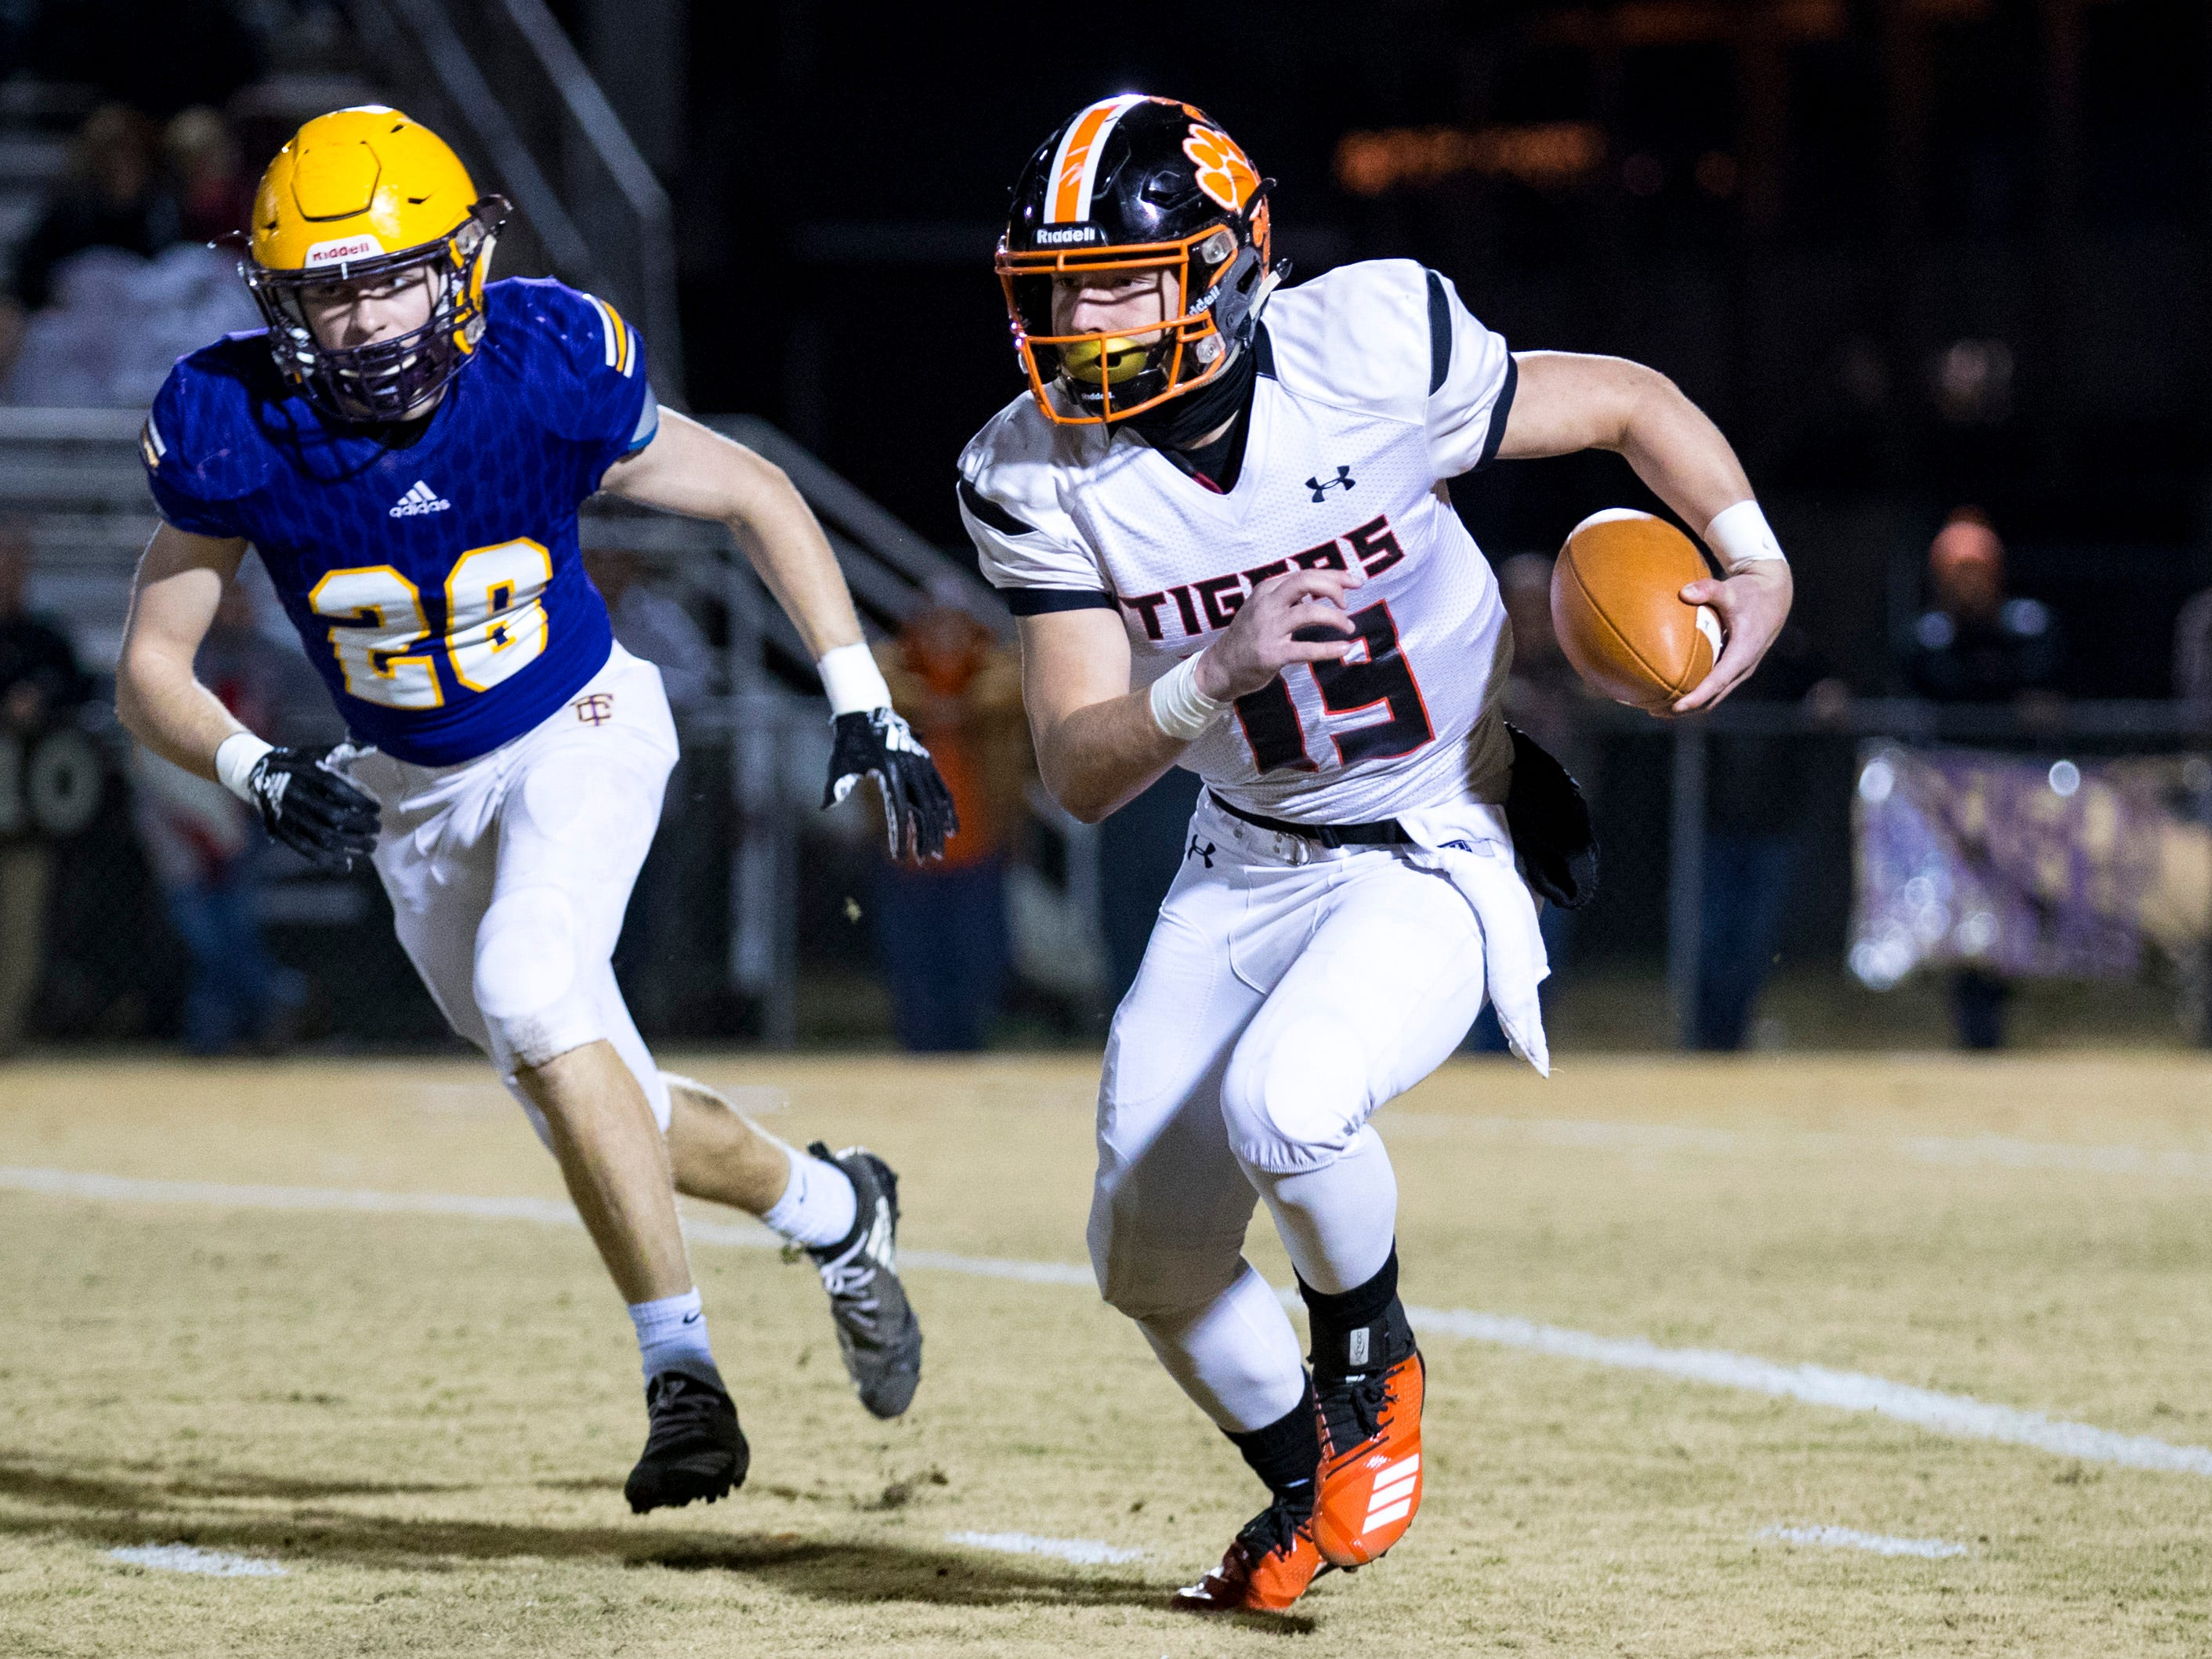 Meigs County's Aaron Swafford (19) runs the ball during Trousdale County's game against Meigs County at Jim Satterfield Stadium in Hartsville on Friday, Nov. 23, 2018.